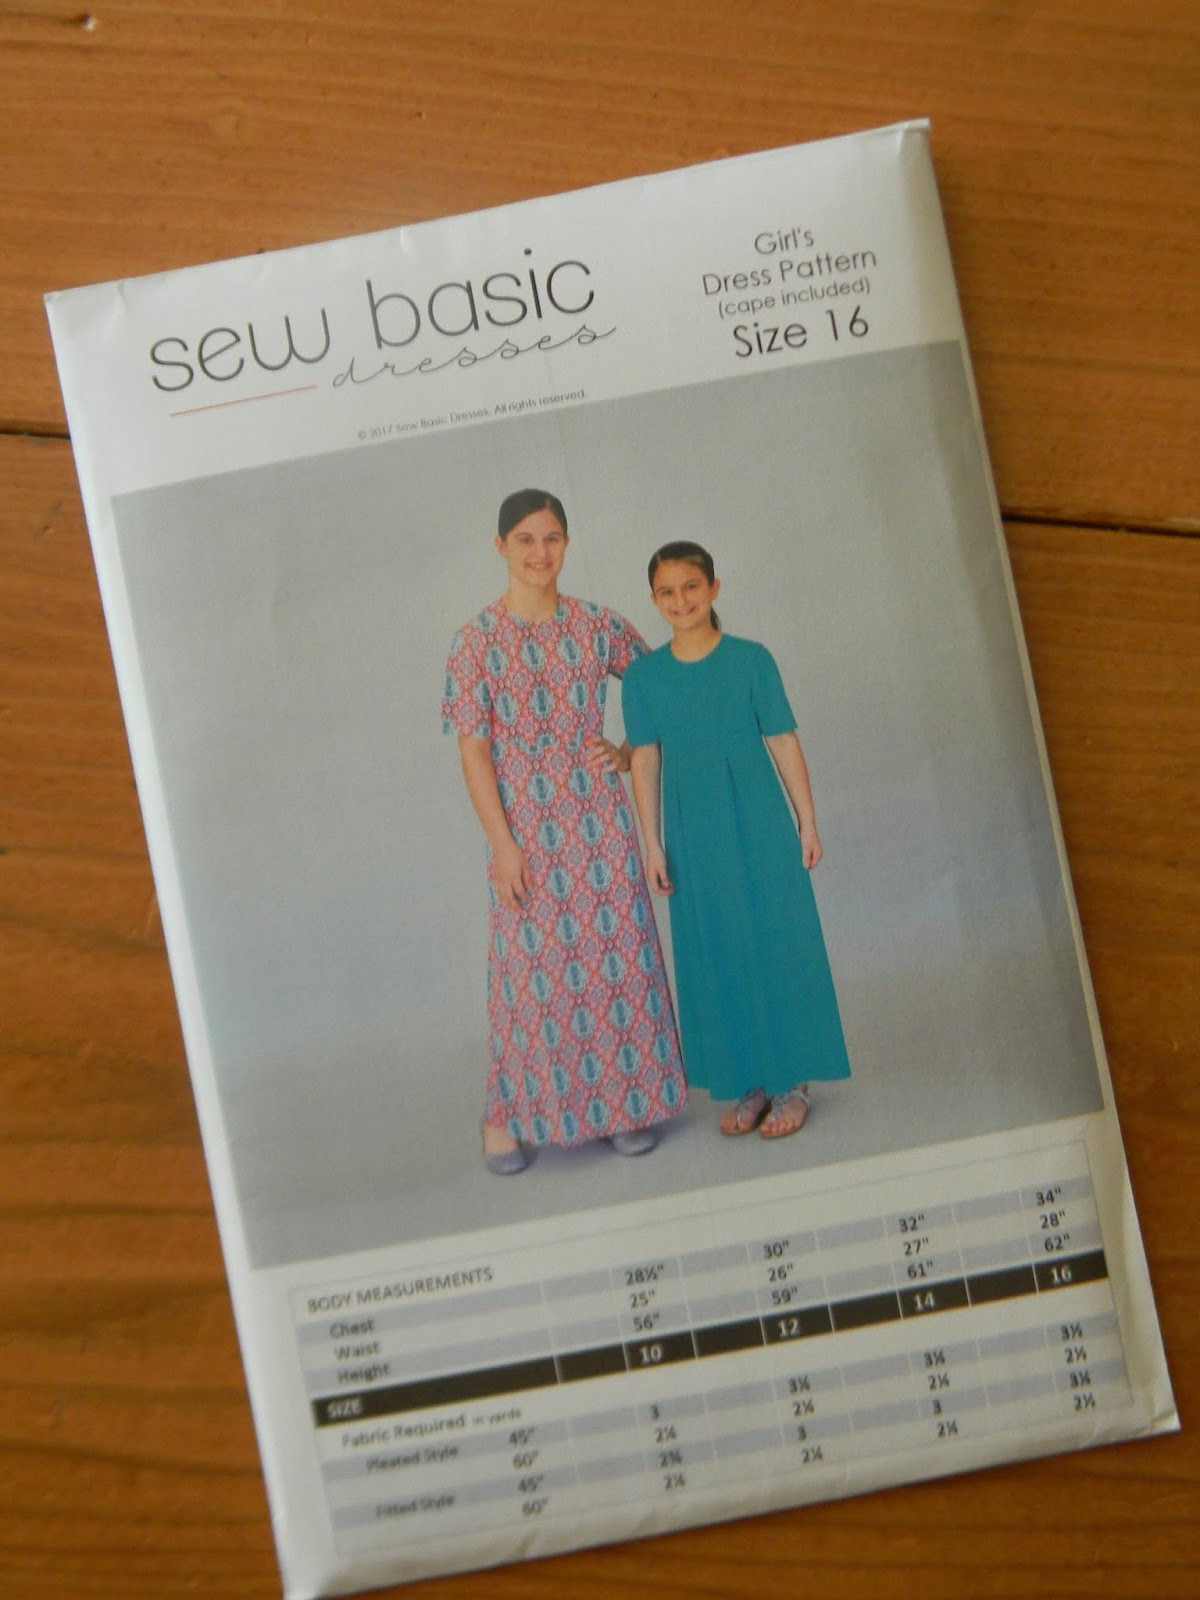 35726017e49d9 Last fall I told you about my new favorite dress patterns for girls - Sew  Basic Dresses patterns. Since then I've used those patterns many many times  and ...